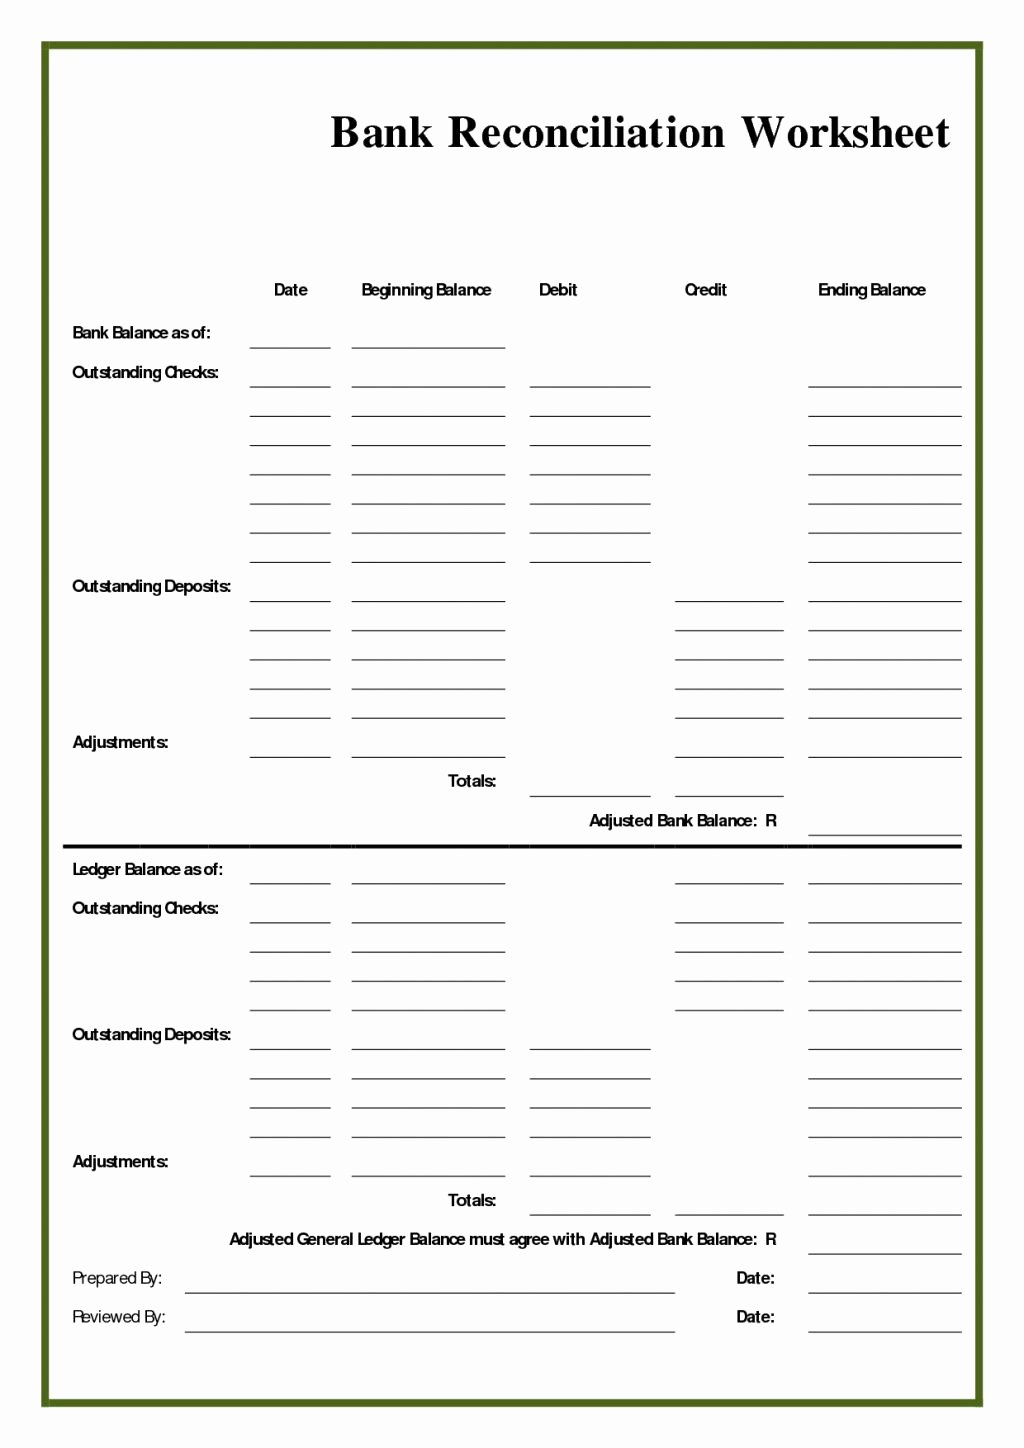 Reconciling A Bank Statement Worksheet New Three Way Reconciliation Worksheet